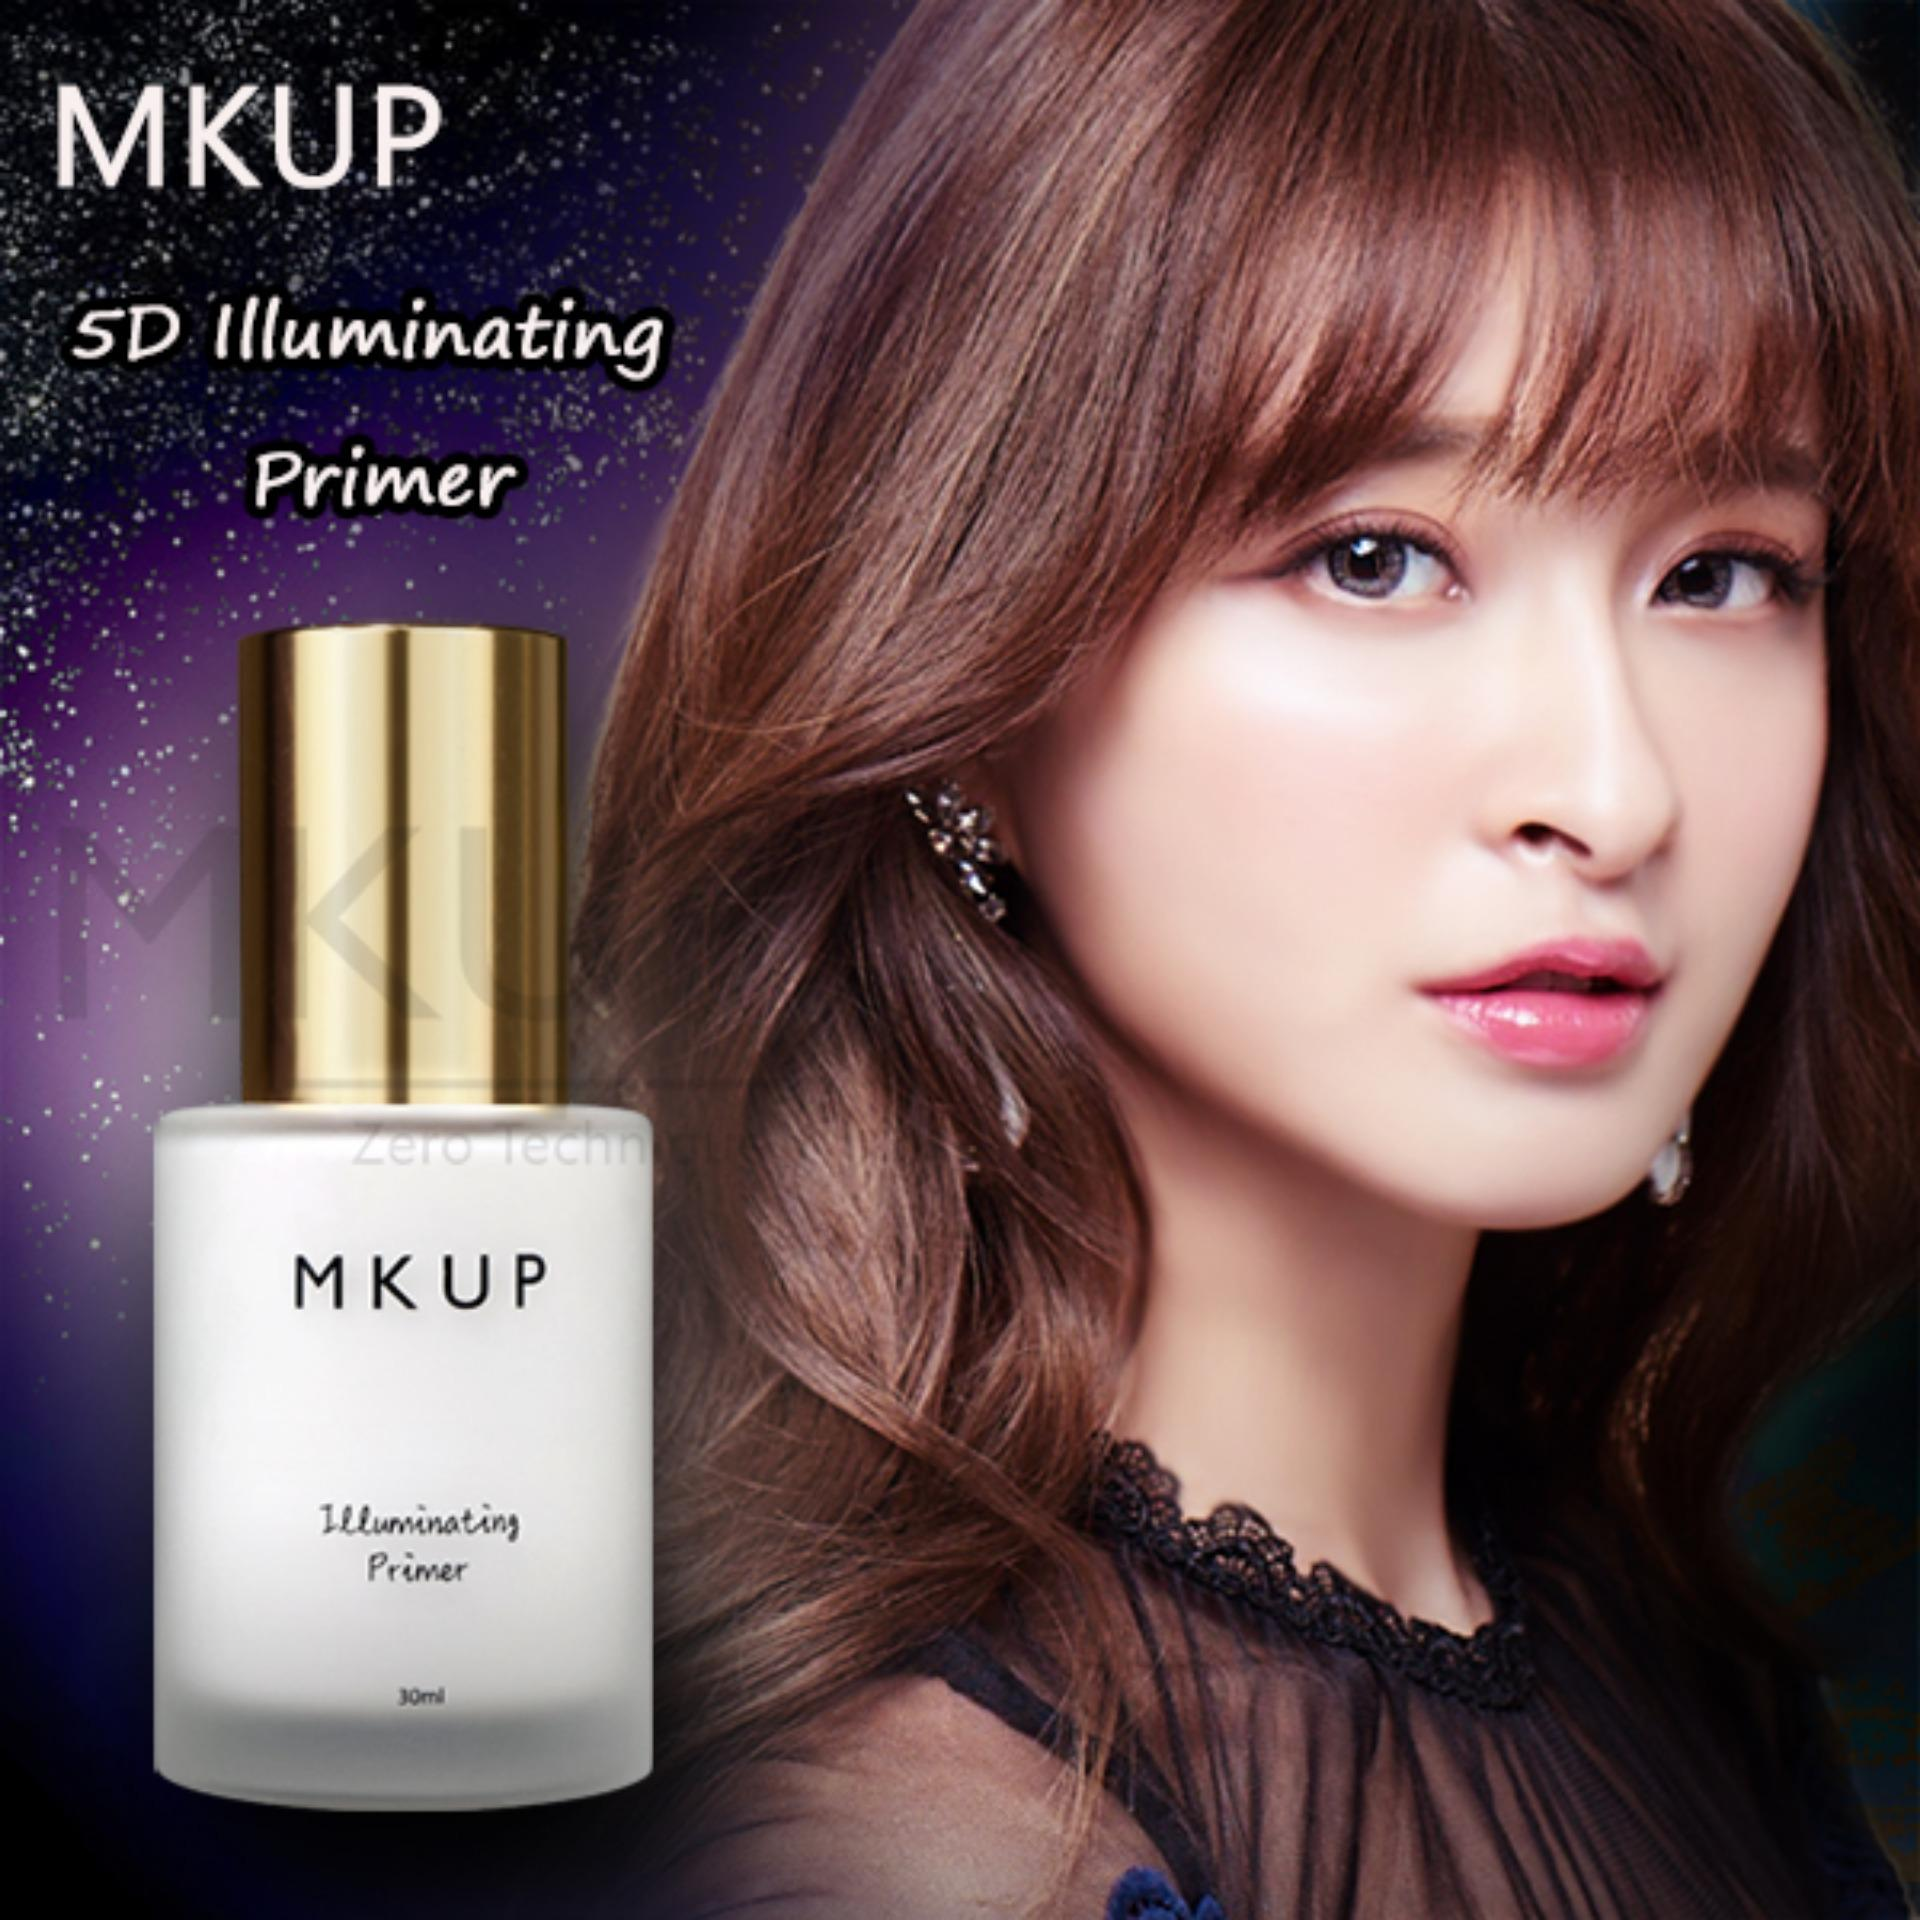 Where To Shop For Mkup® 5D Illuminating Primer